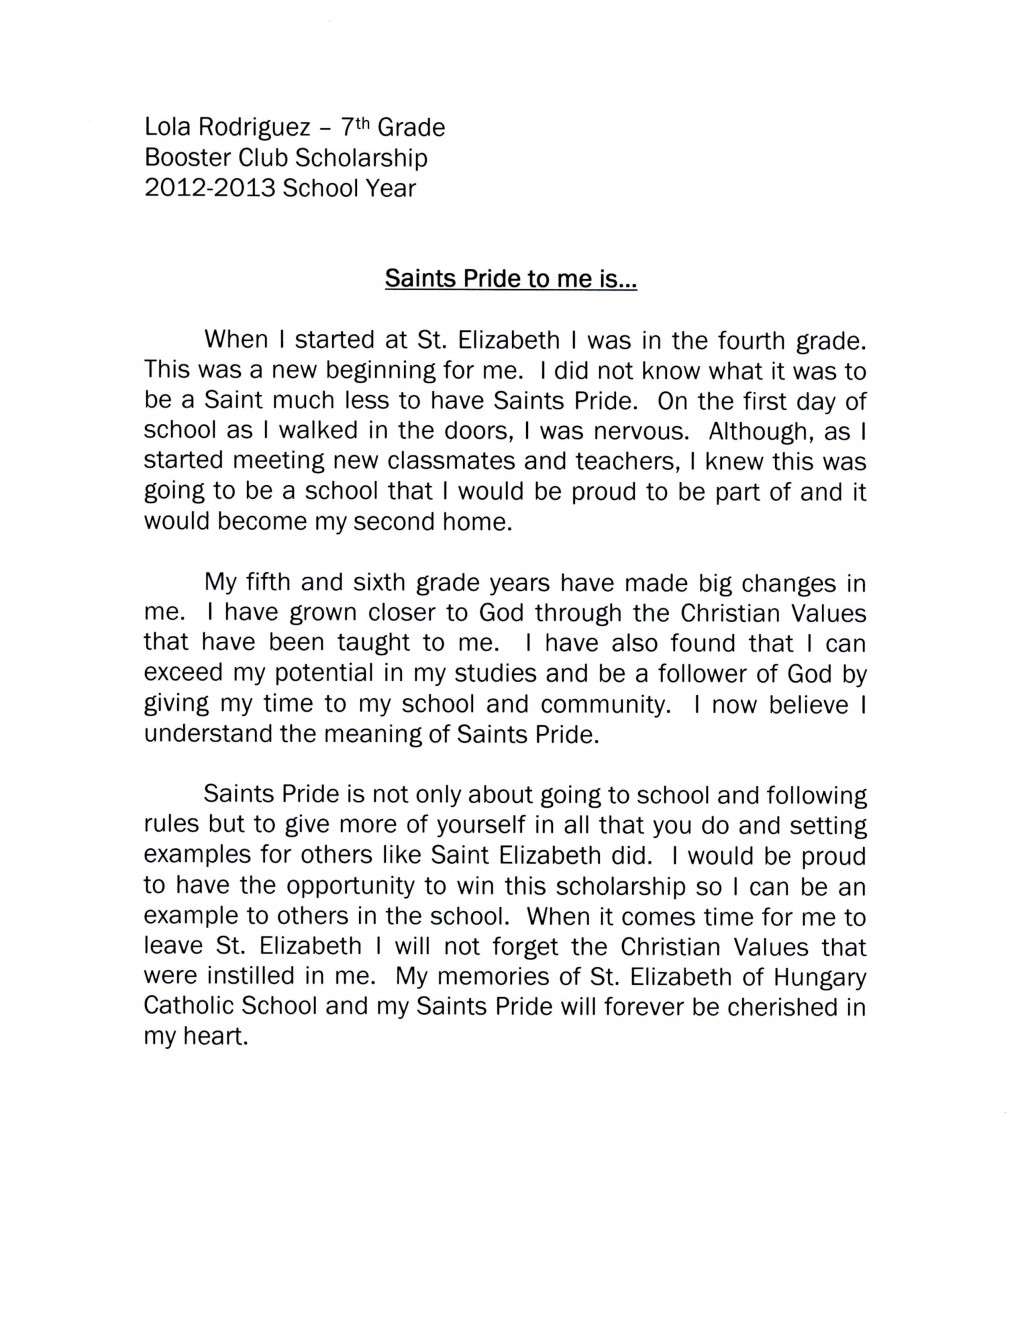 005 Lola Rodriguez Essay Example National Honors Unique Society Conclusion Honor Samples Character Large